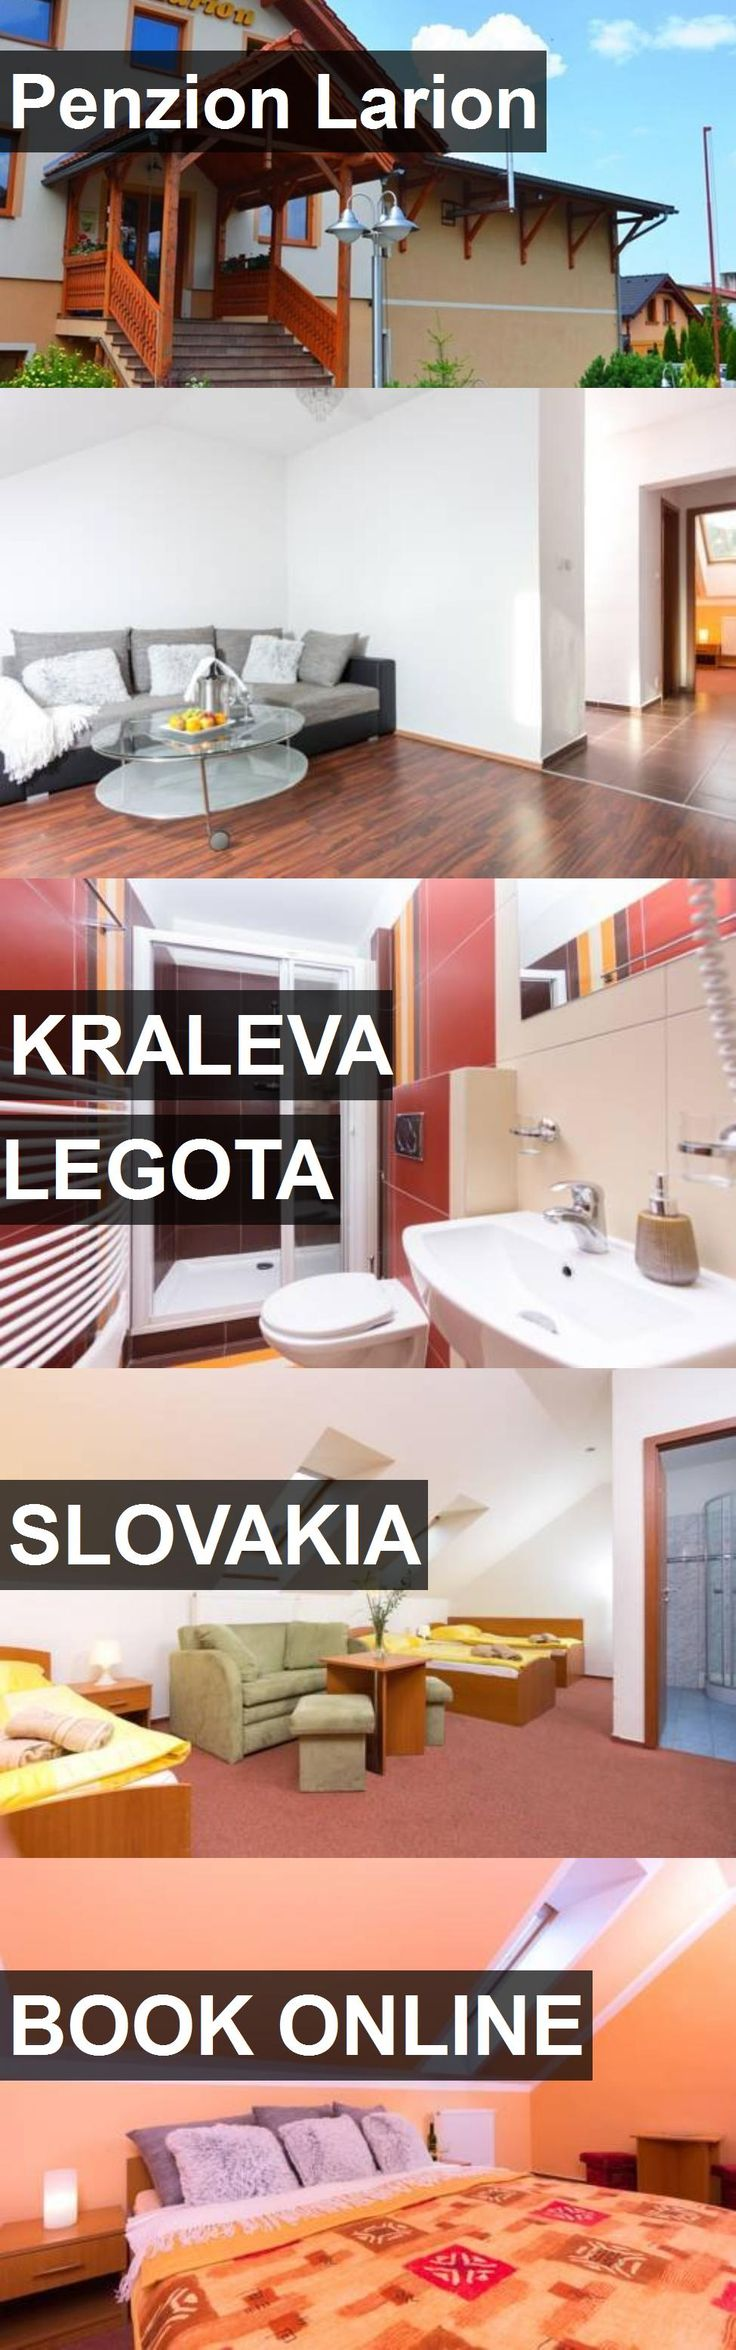 Hotel Penzion Larion in Kraleva Legota, Slovakia. For more information, photos, reviews and best prices please follow the link. #Slovakia #KralevaLegota #hotel #travel #vacation